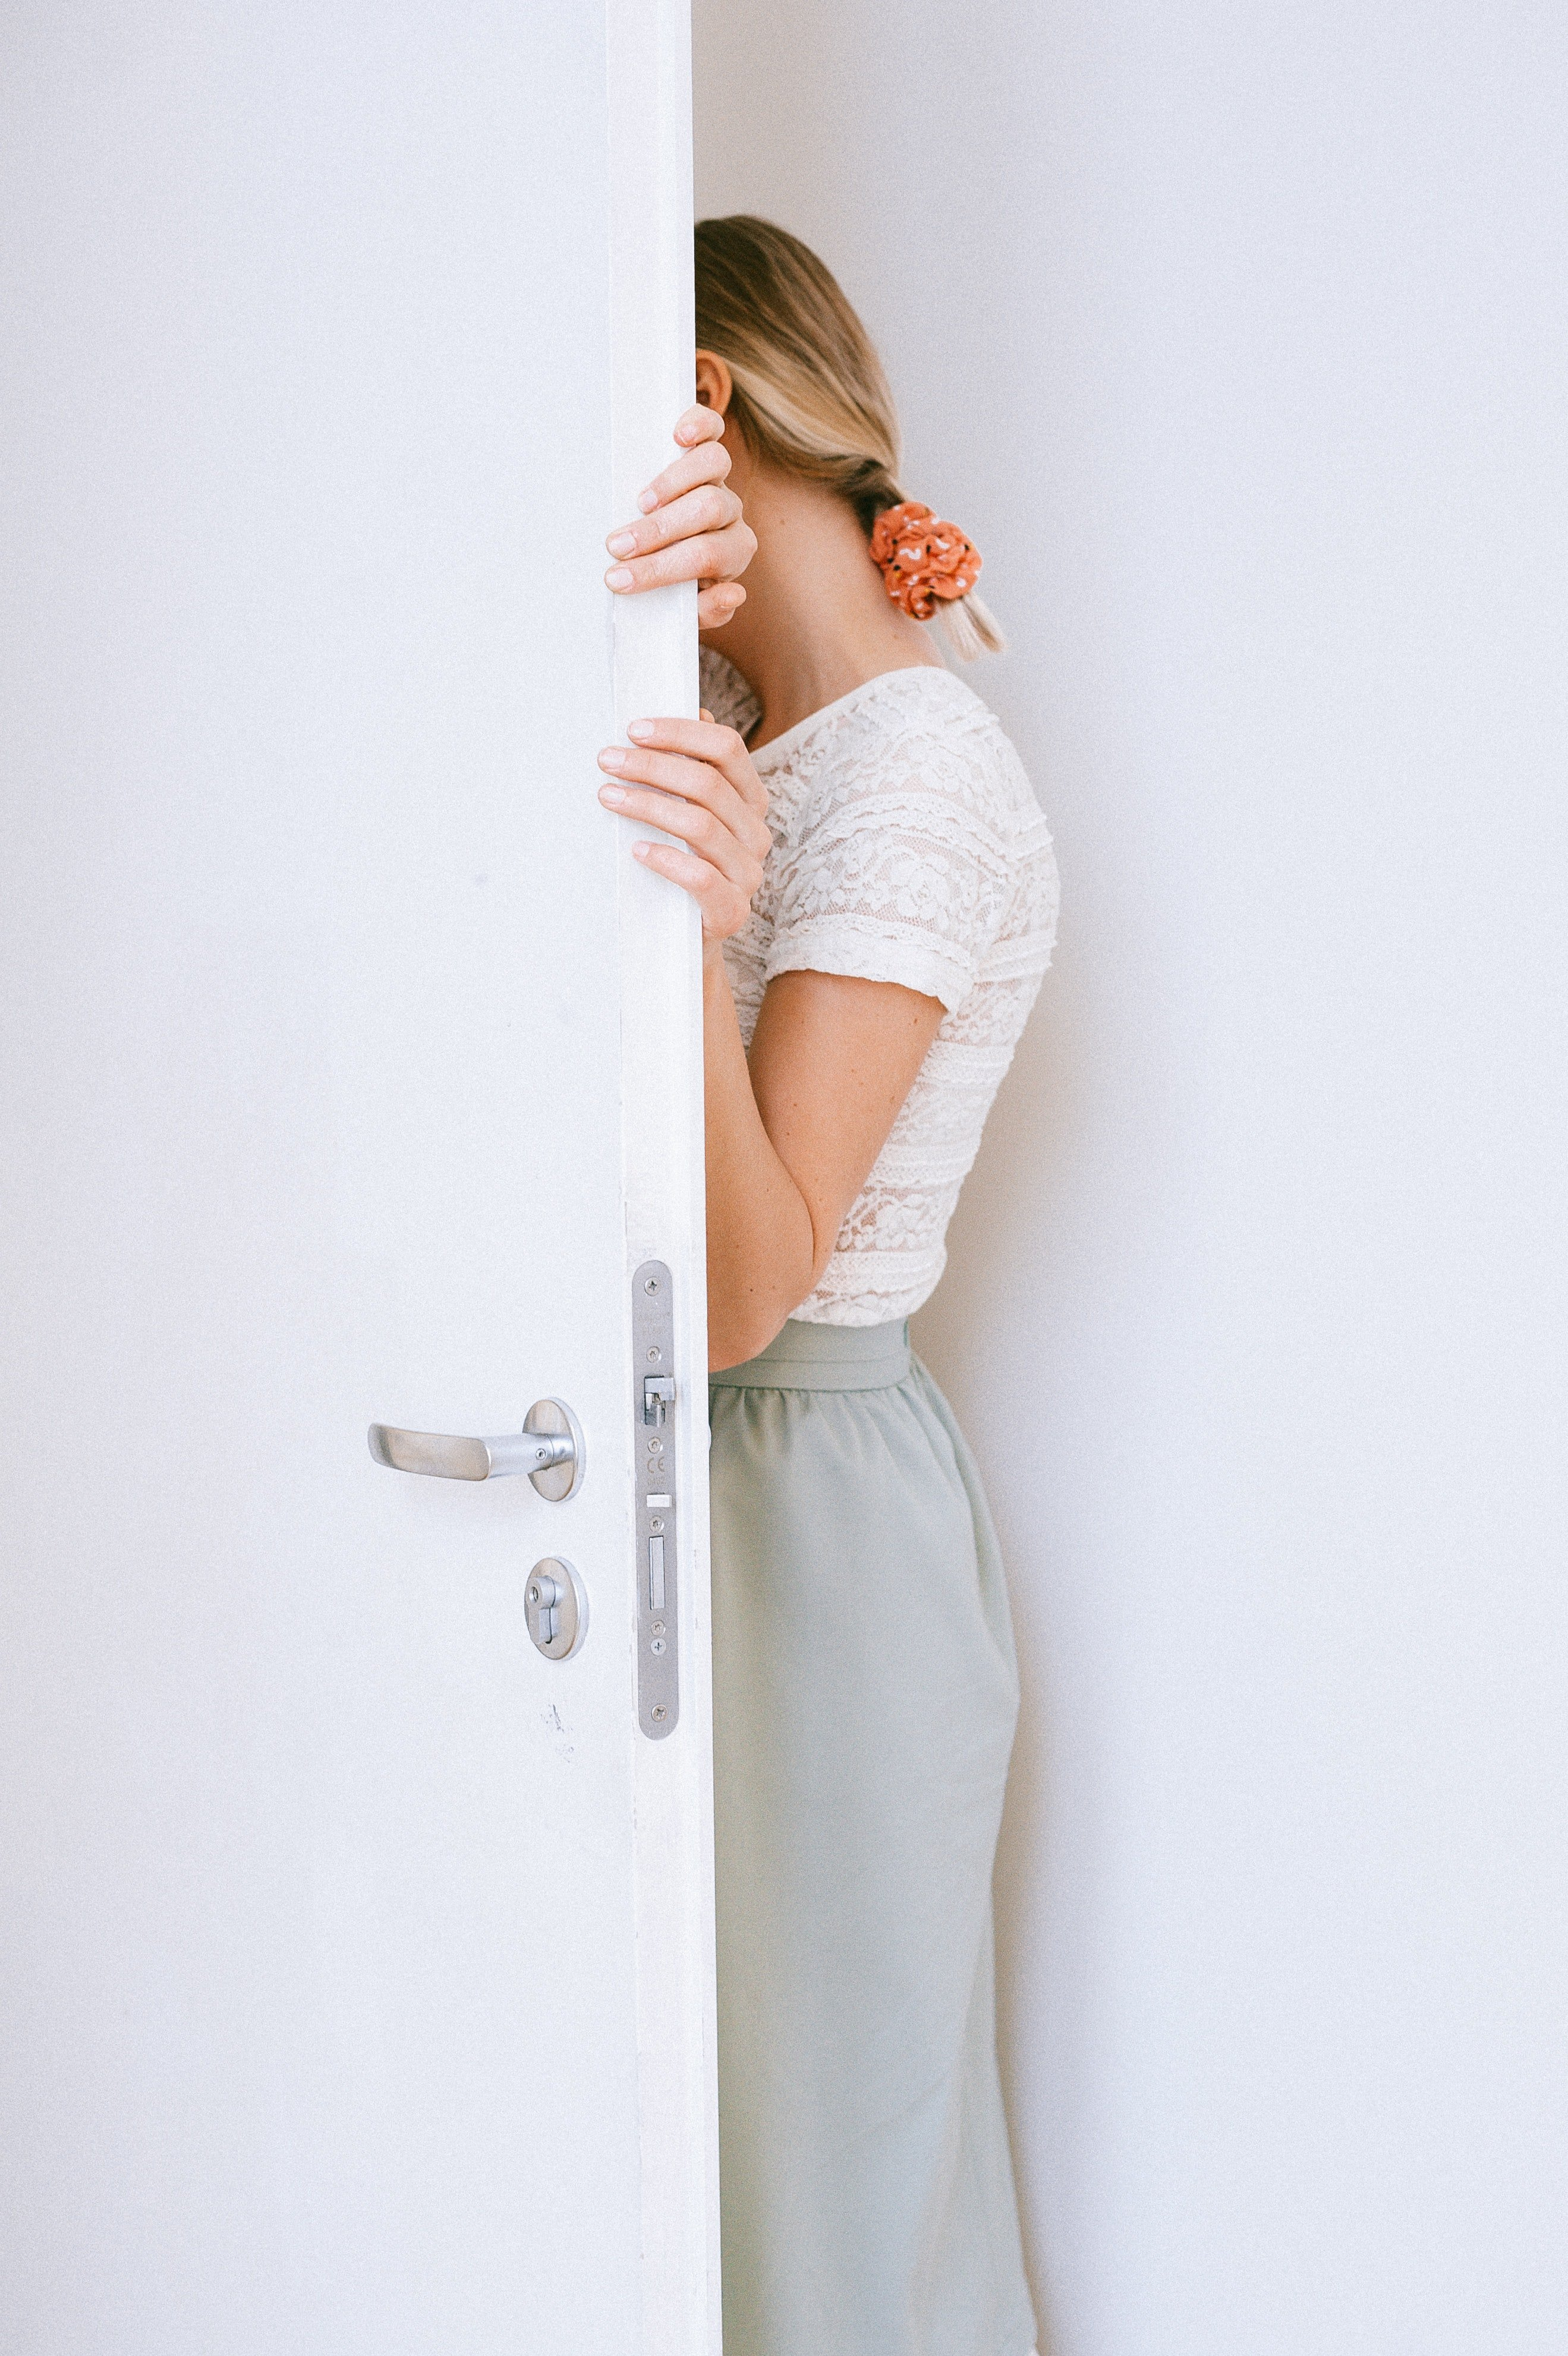 A woman leaning into an open door. | Photo: Pexels